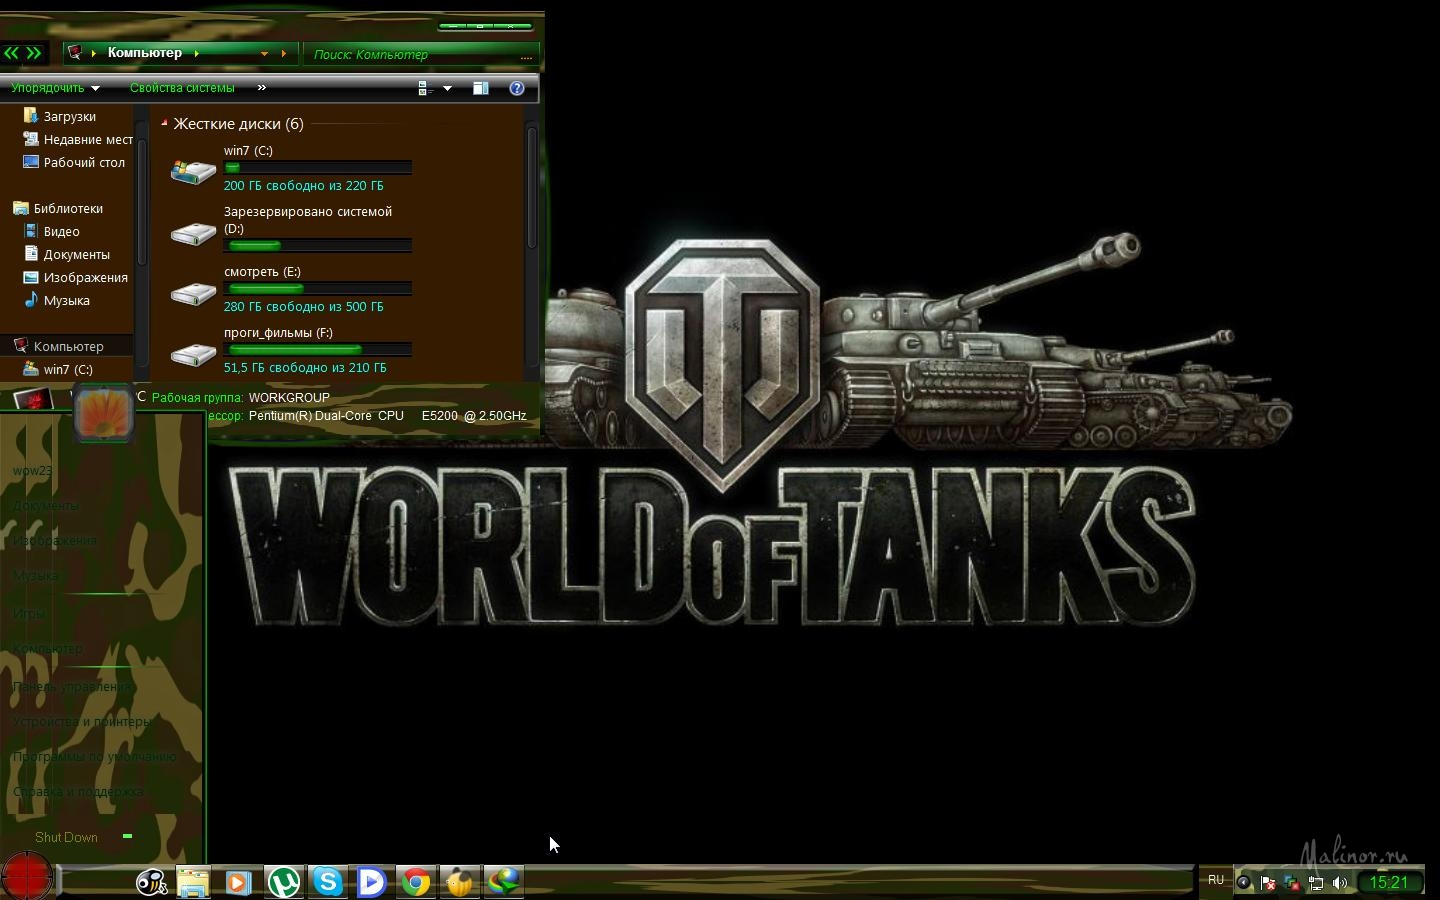 R7 m260 в world of tanks